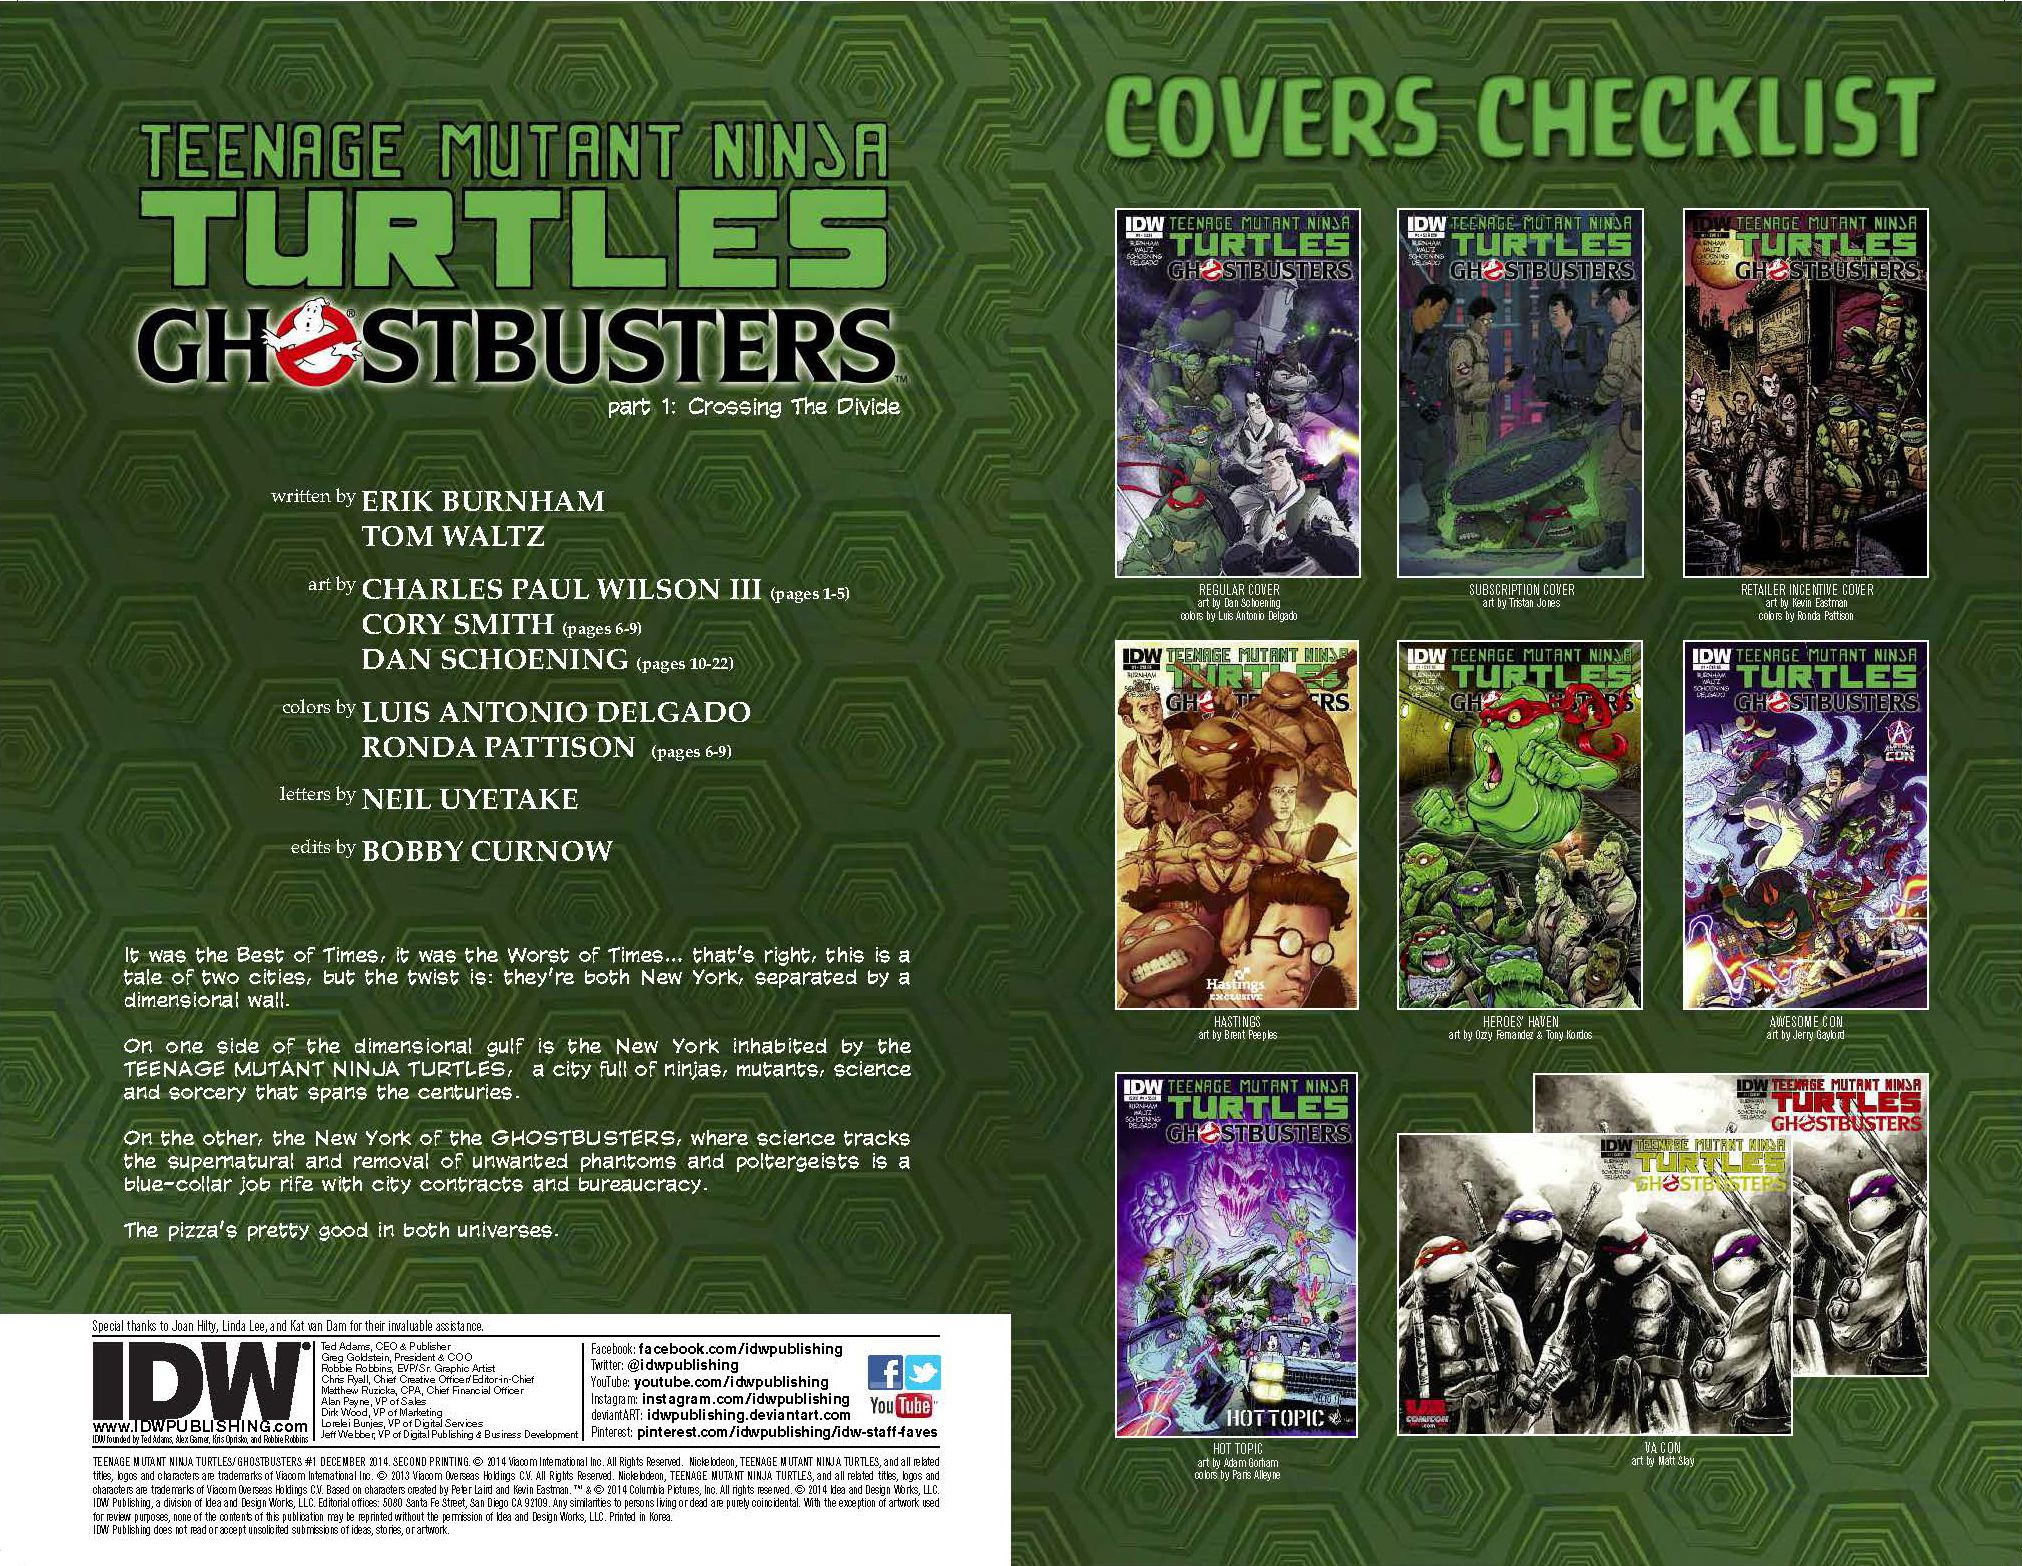 TMNT/Ghostbusters covers guide.